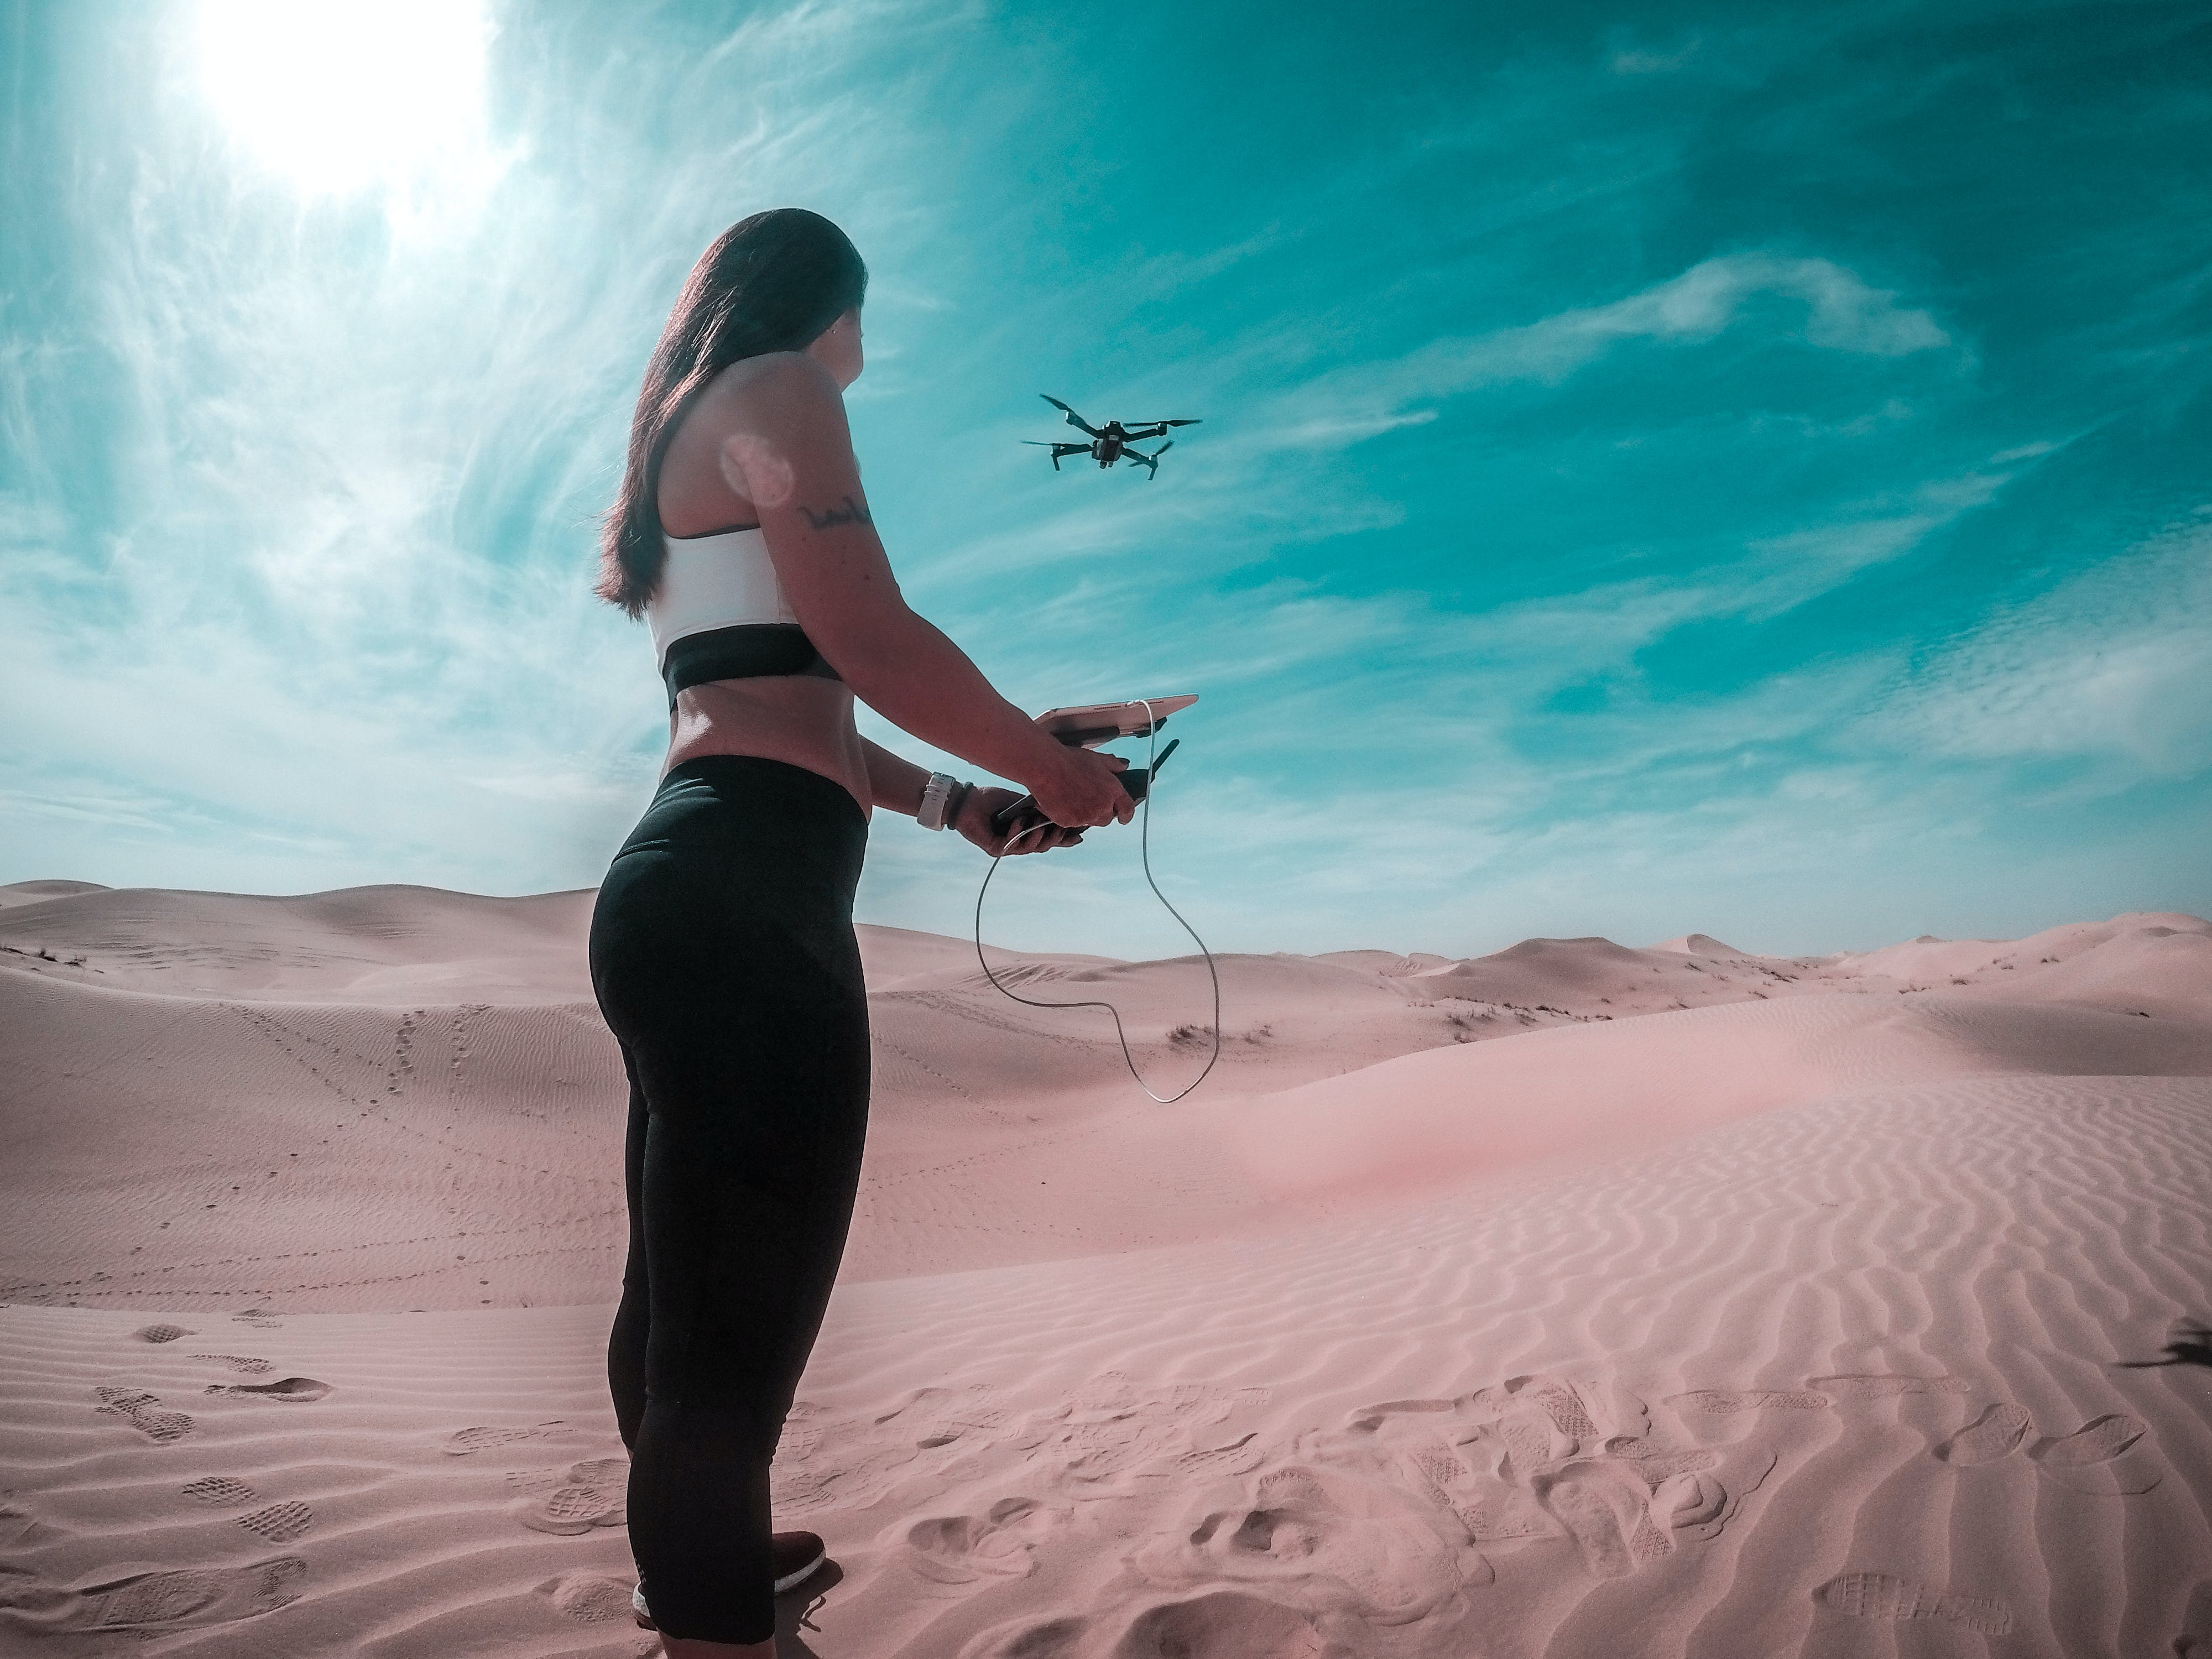 Drone on Mid Air While Woman Holding Controller